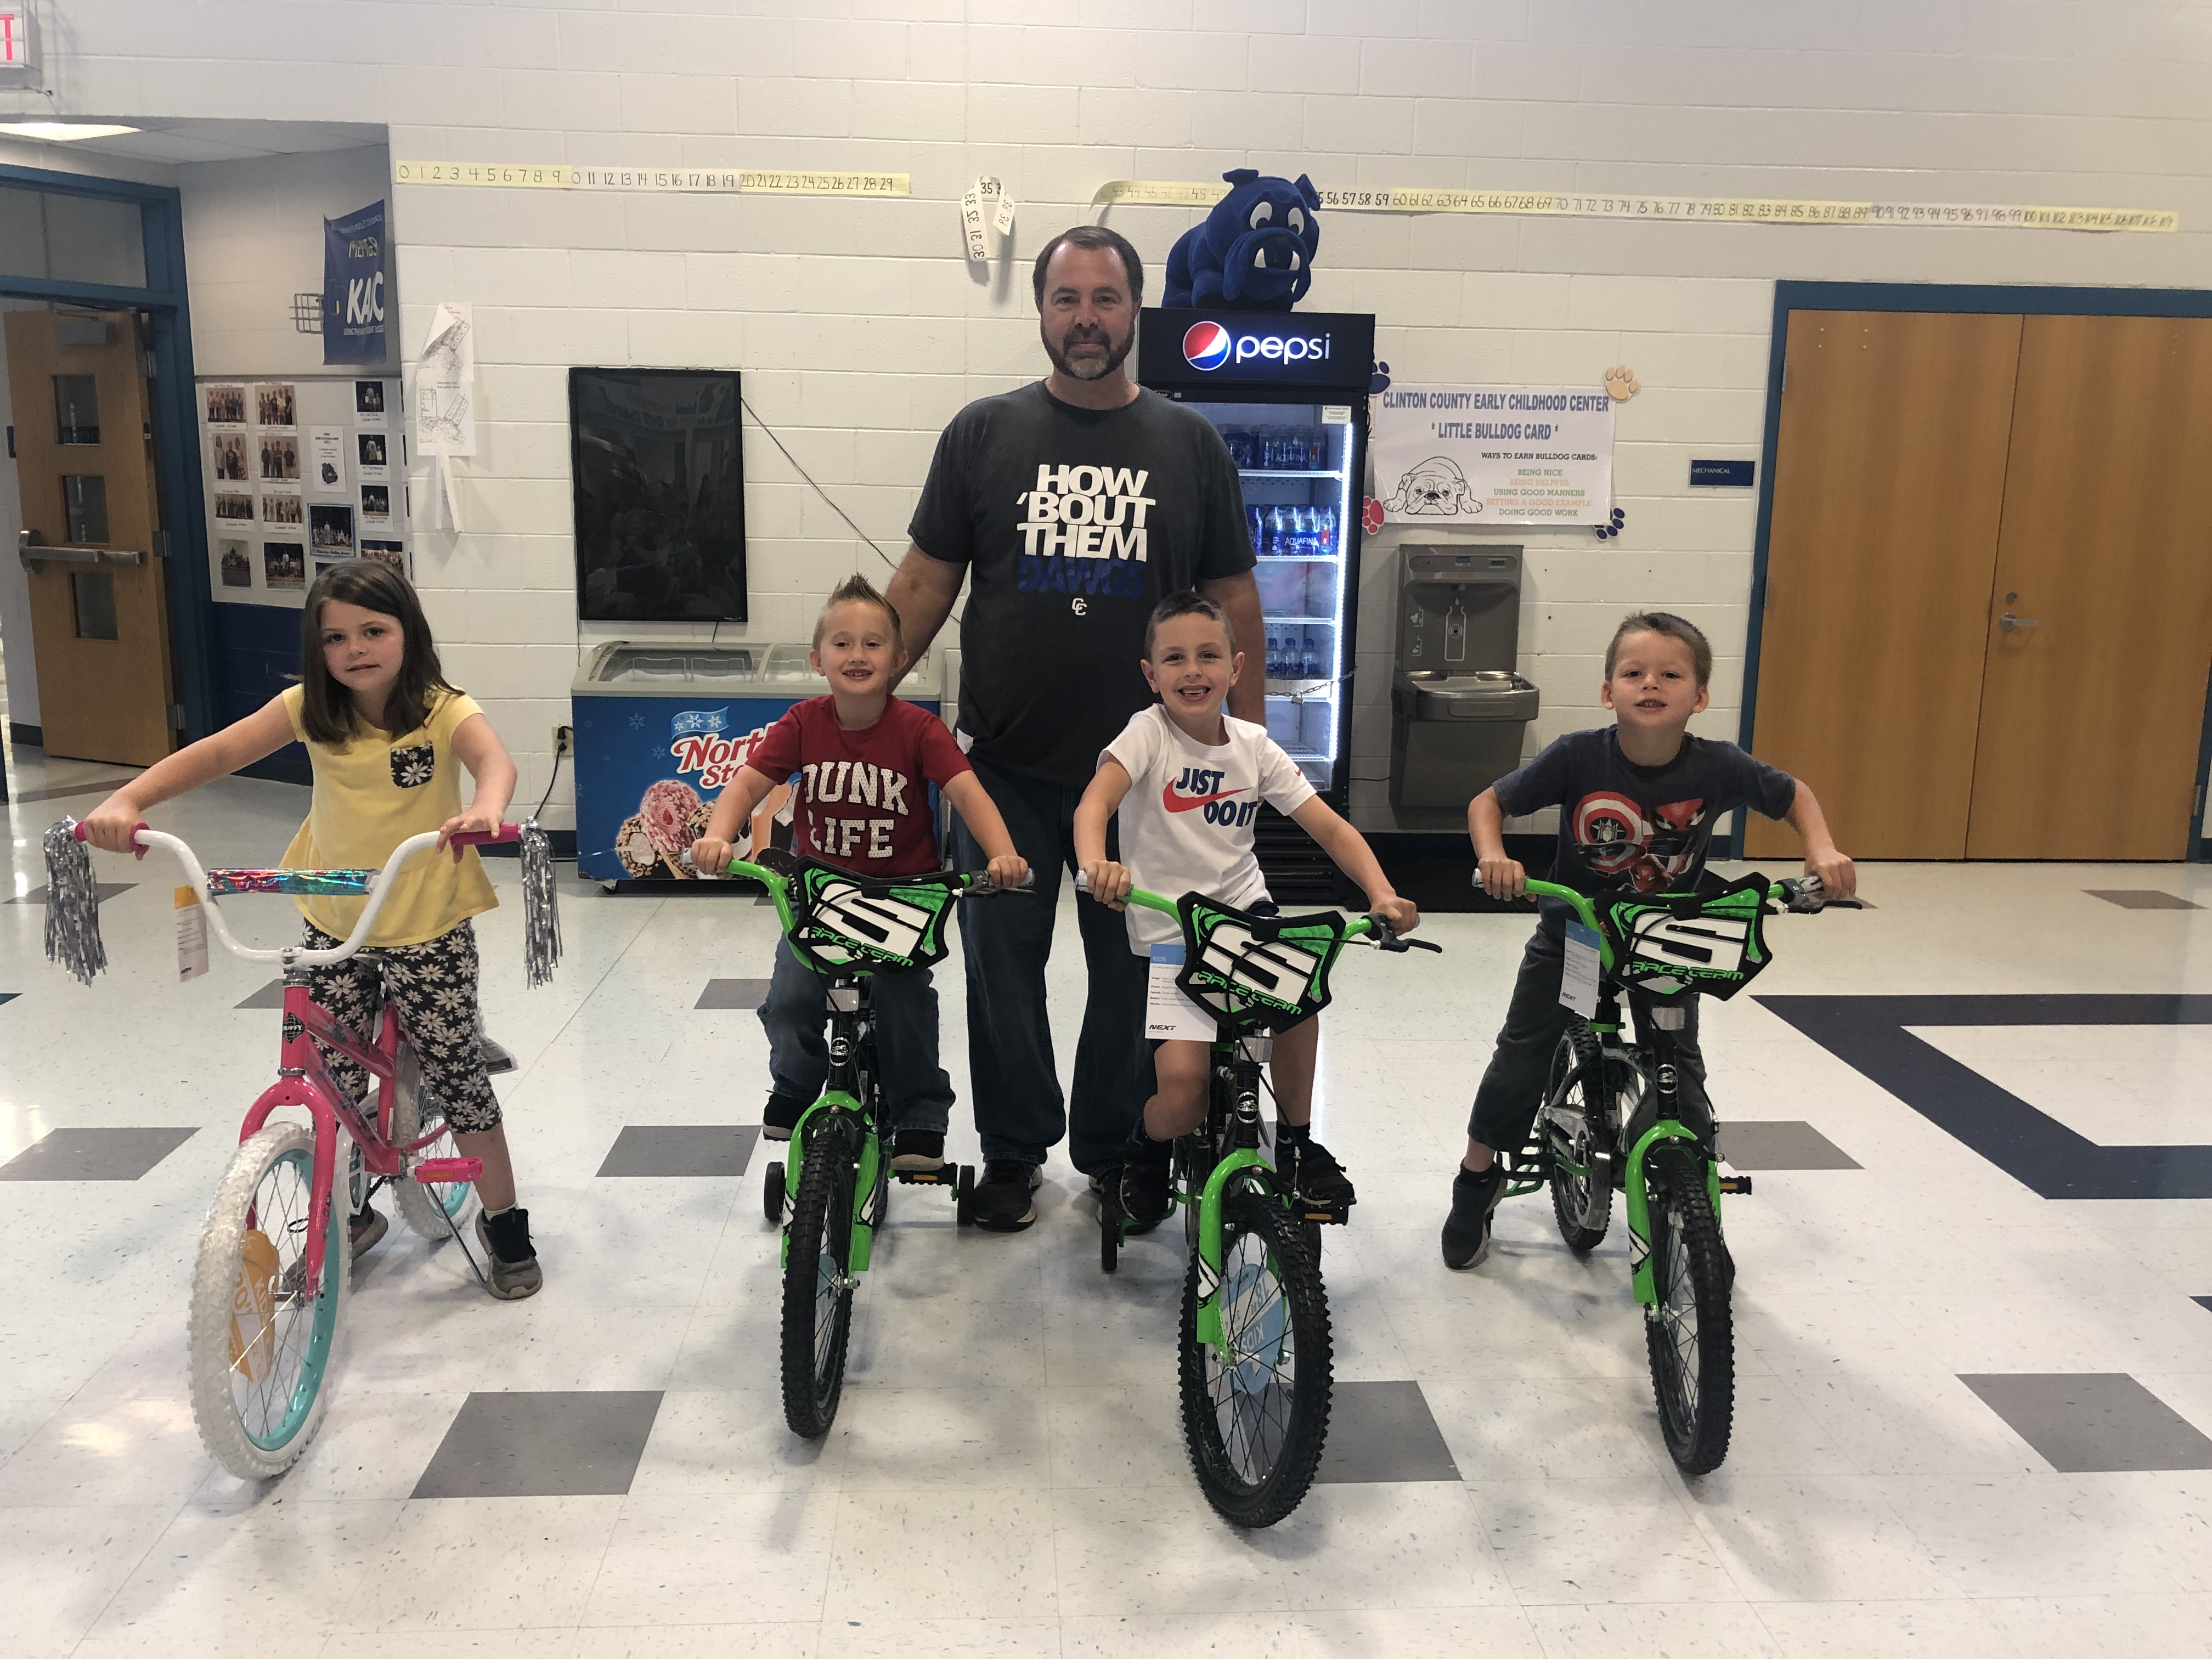 Calirose Johnson, Carson Wells, Bentley Creekmore, & Knoxx Duvall received new bikes on the last day of school for having perfect attendance at ECC during the 2018-19 school year.